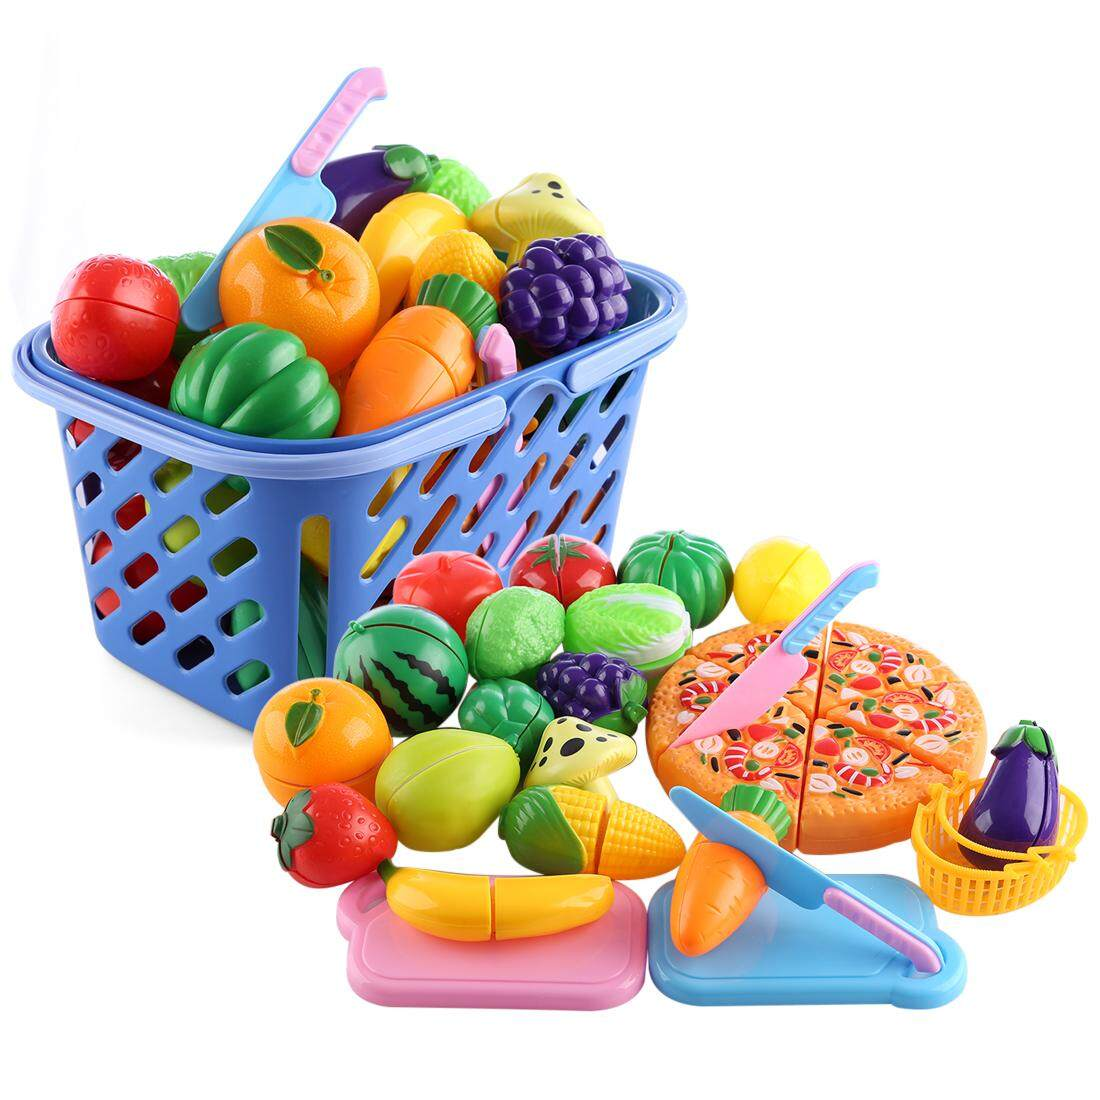 Hình ảnh 360DSC 29Pcs/Set Plastic Fruit Vegetables Cutting Toy Early Development and Education Toy for Baby - Color Random - intl